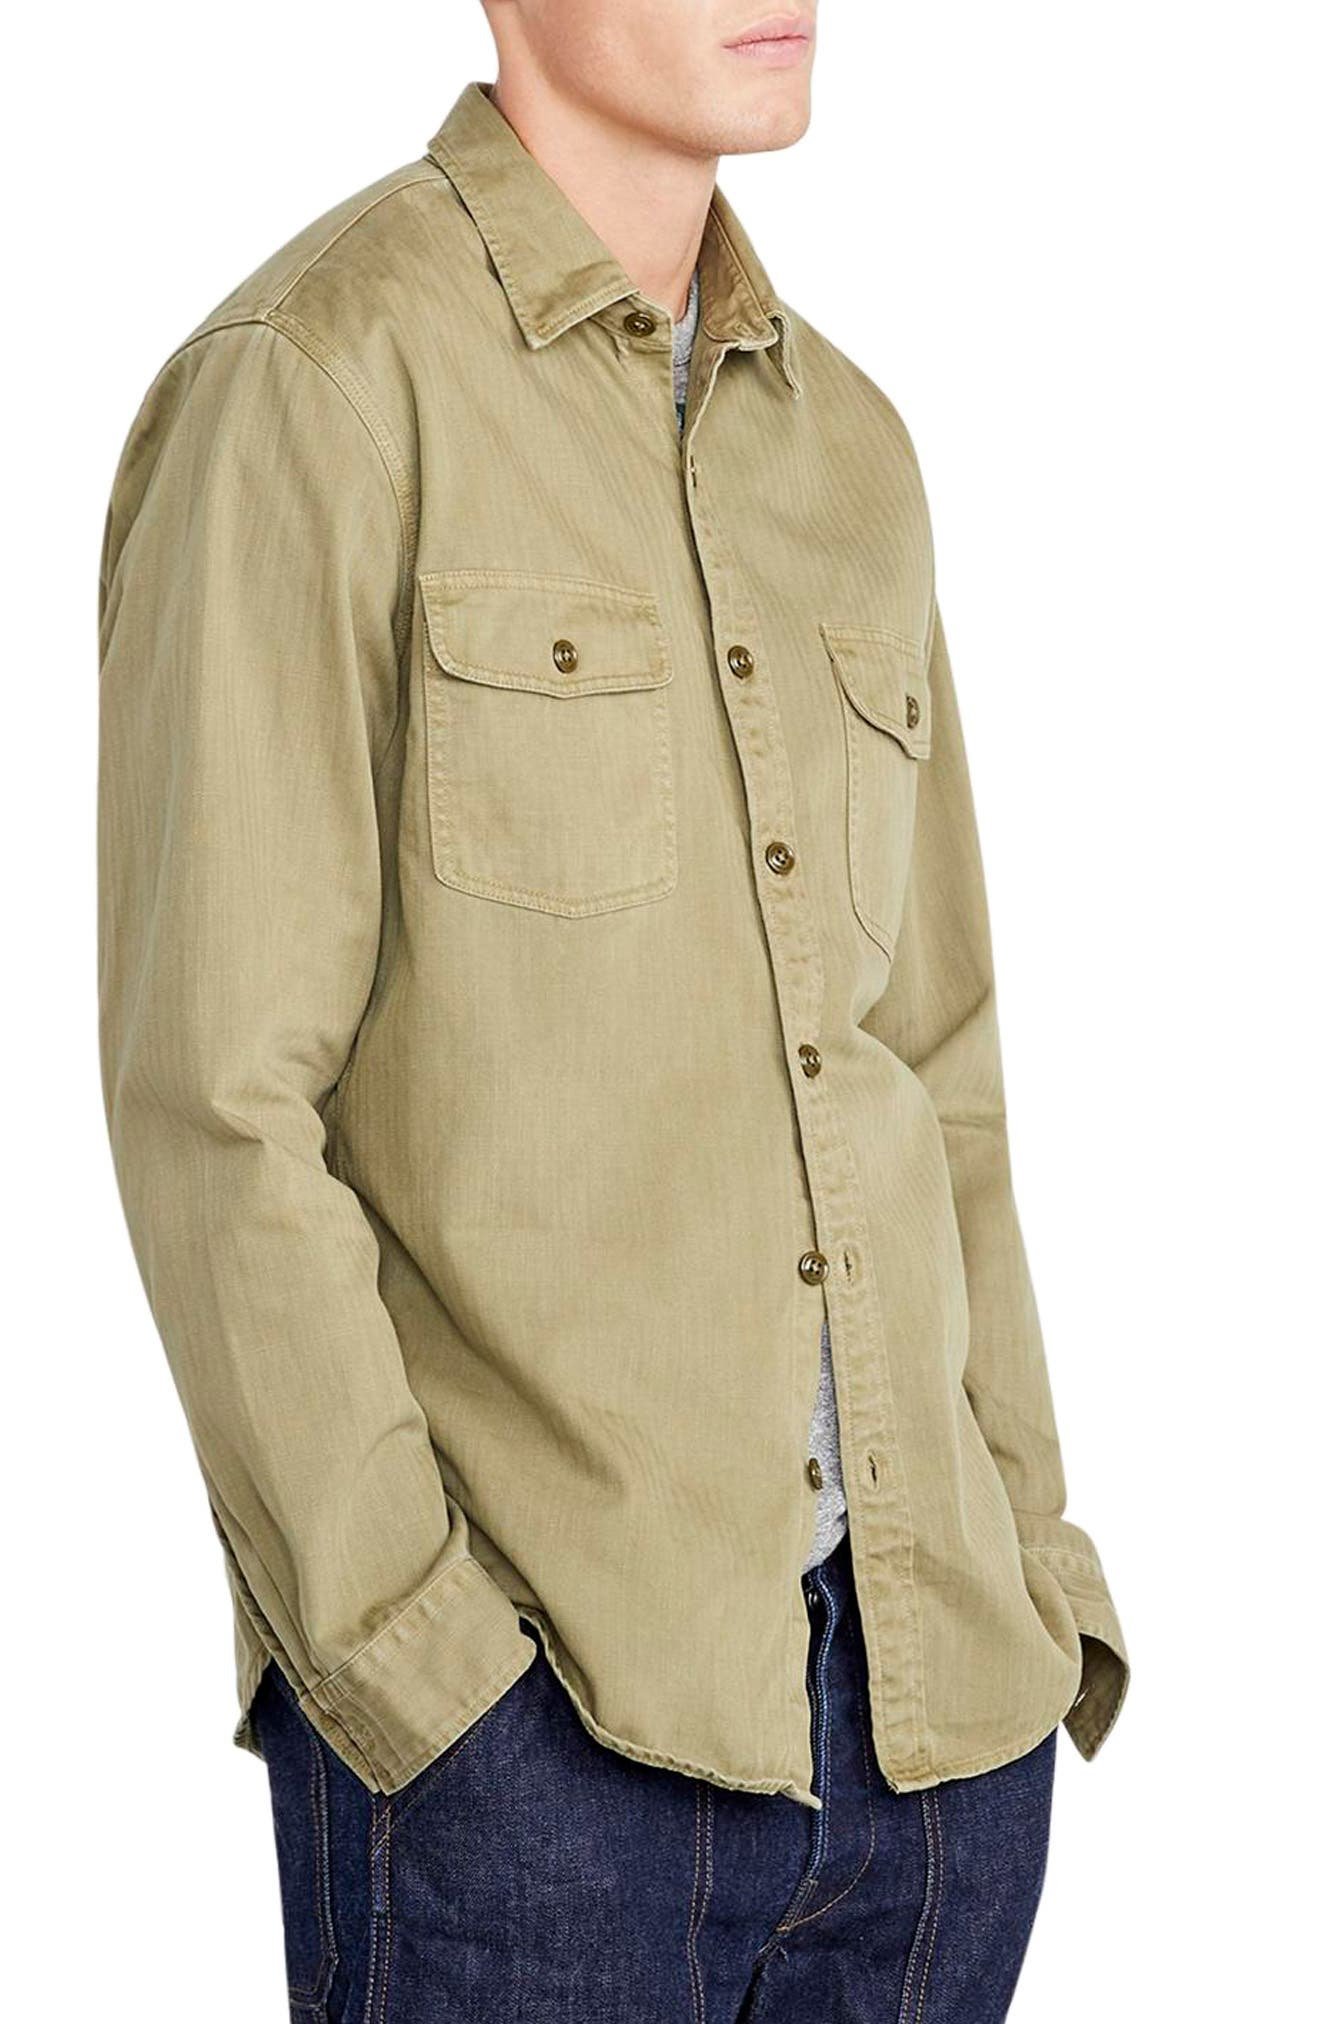 Wallace & Barnes Two-Pocket Workshirt,                             Alternate thumbnail 3, color,                             TUSCAN OLIVE